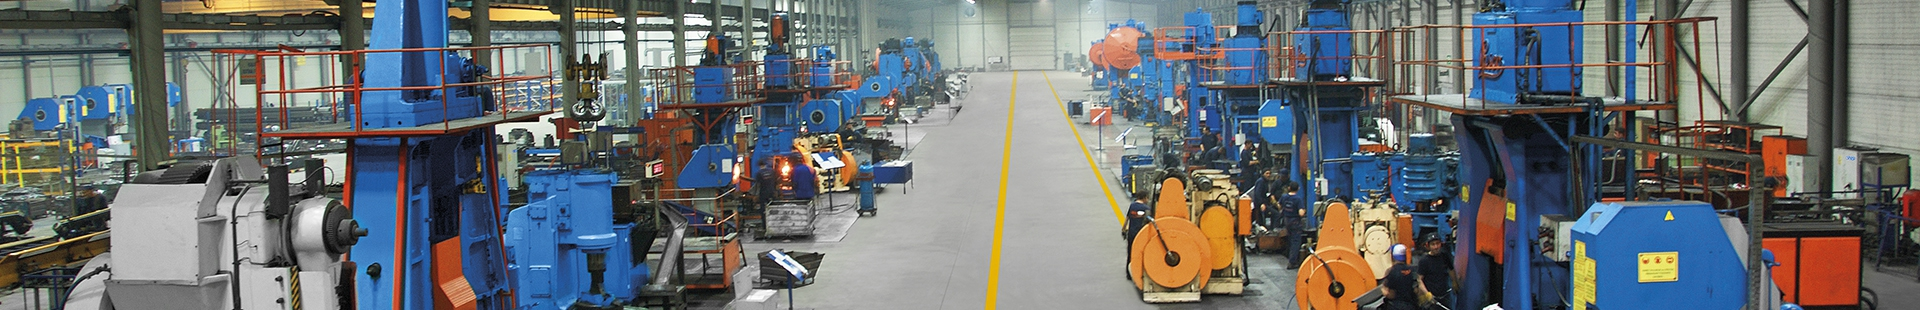 Our steel forging factory keeps growing with new equipment.